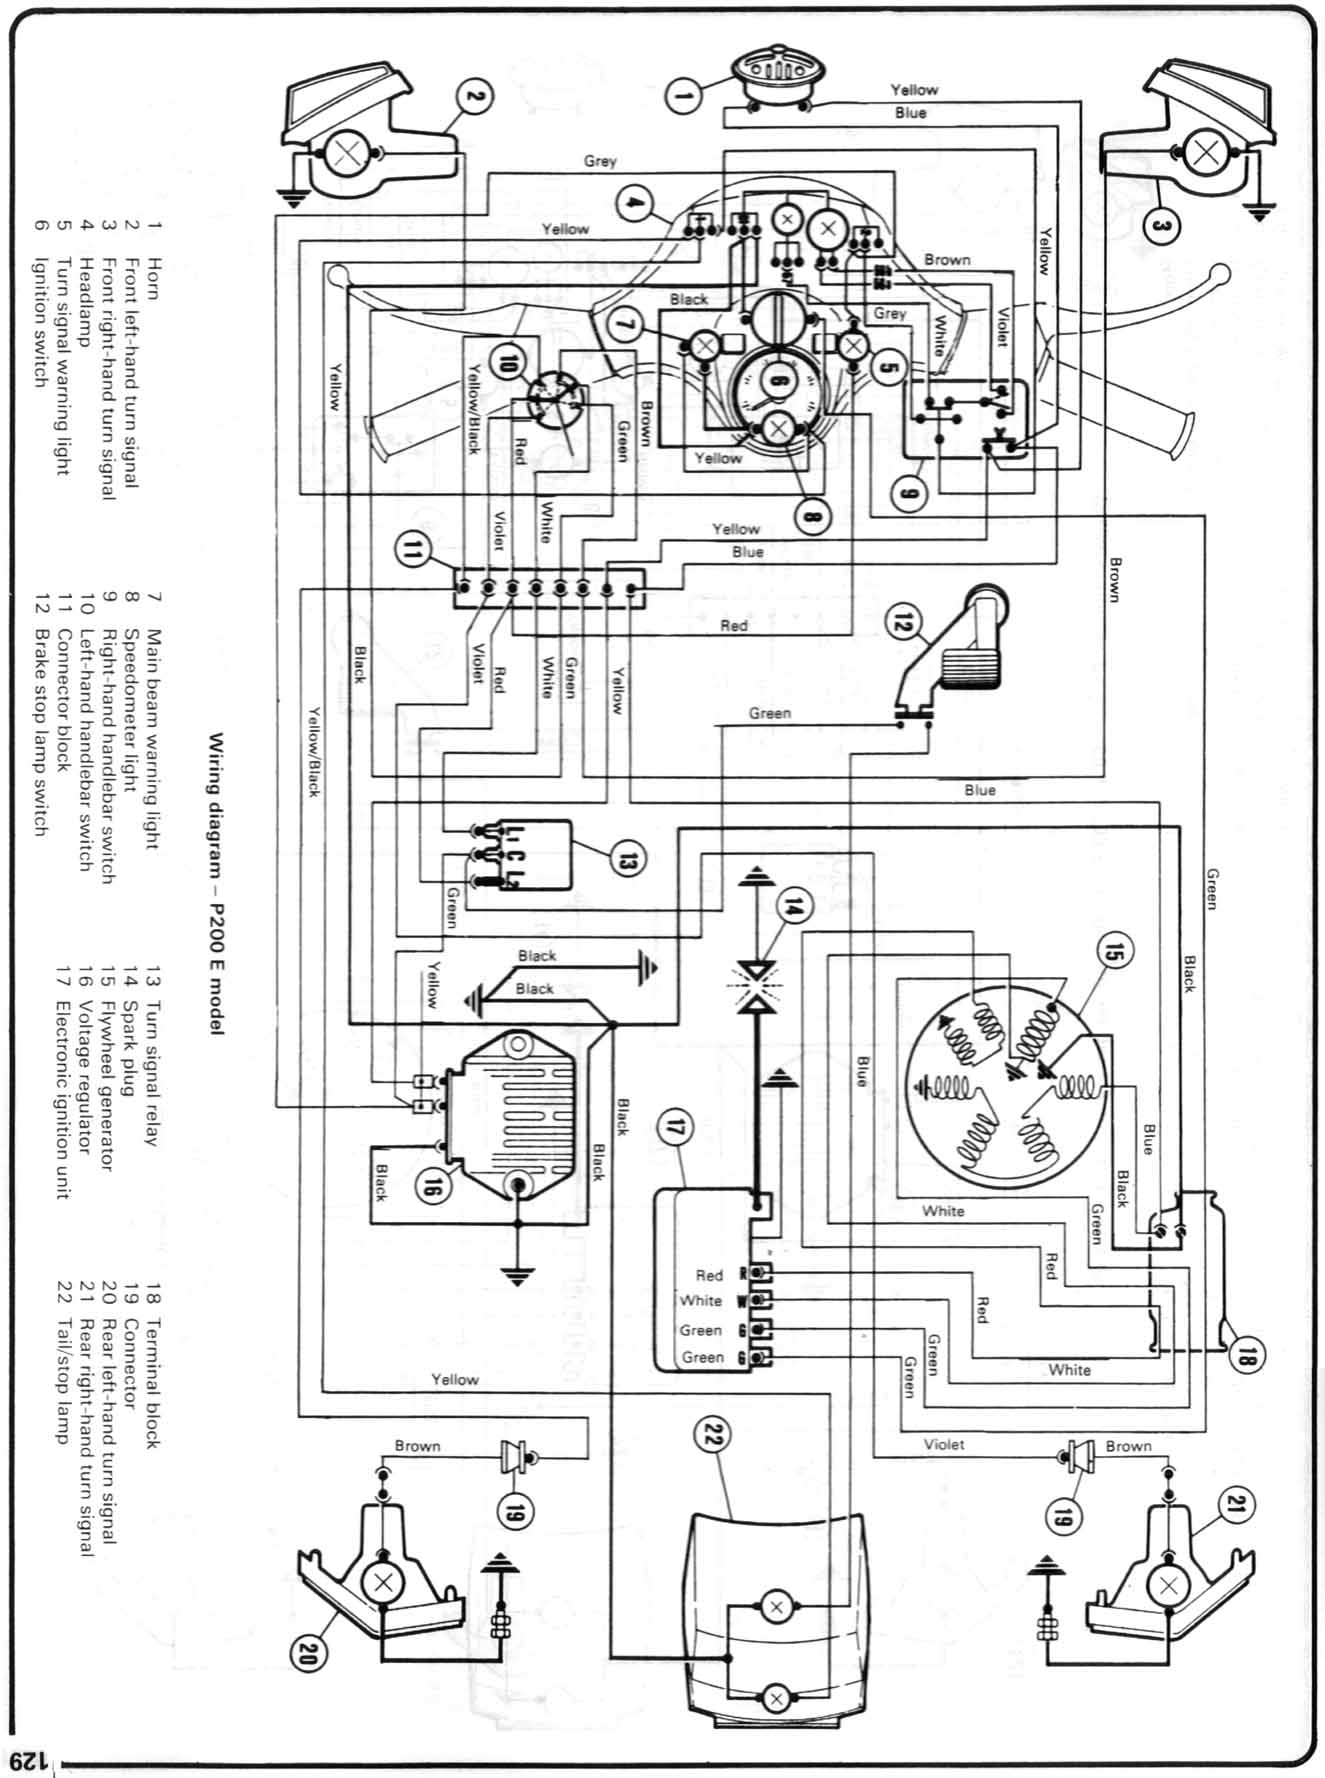 Wiring Diagram Cdi Vespa Apktodownload